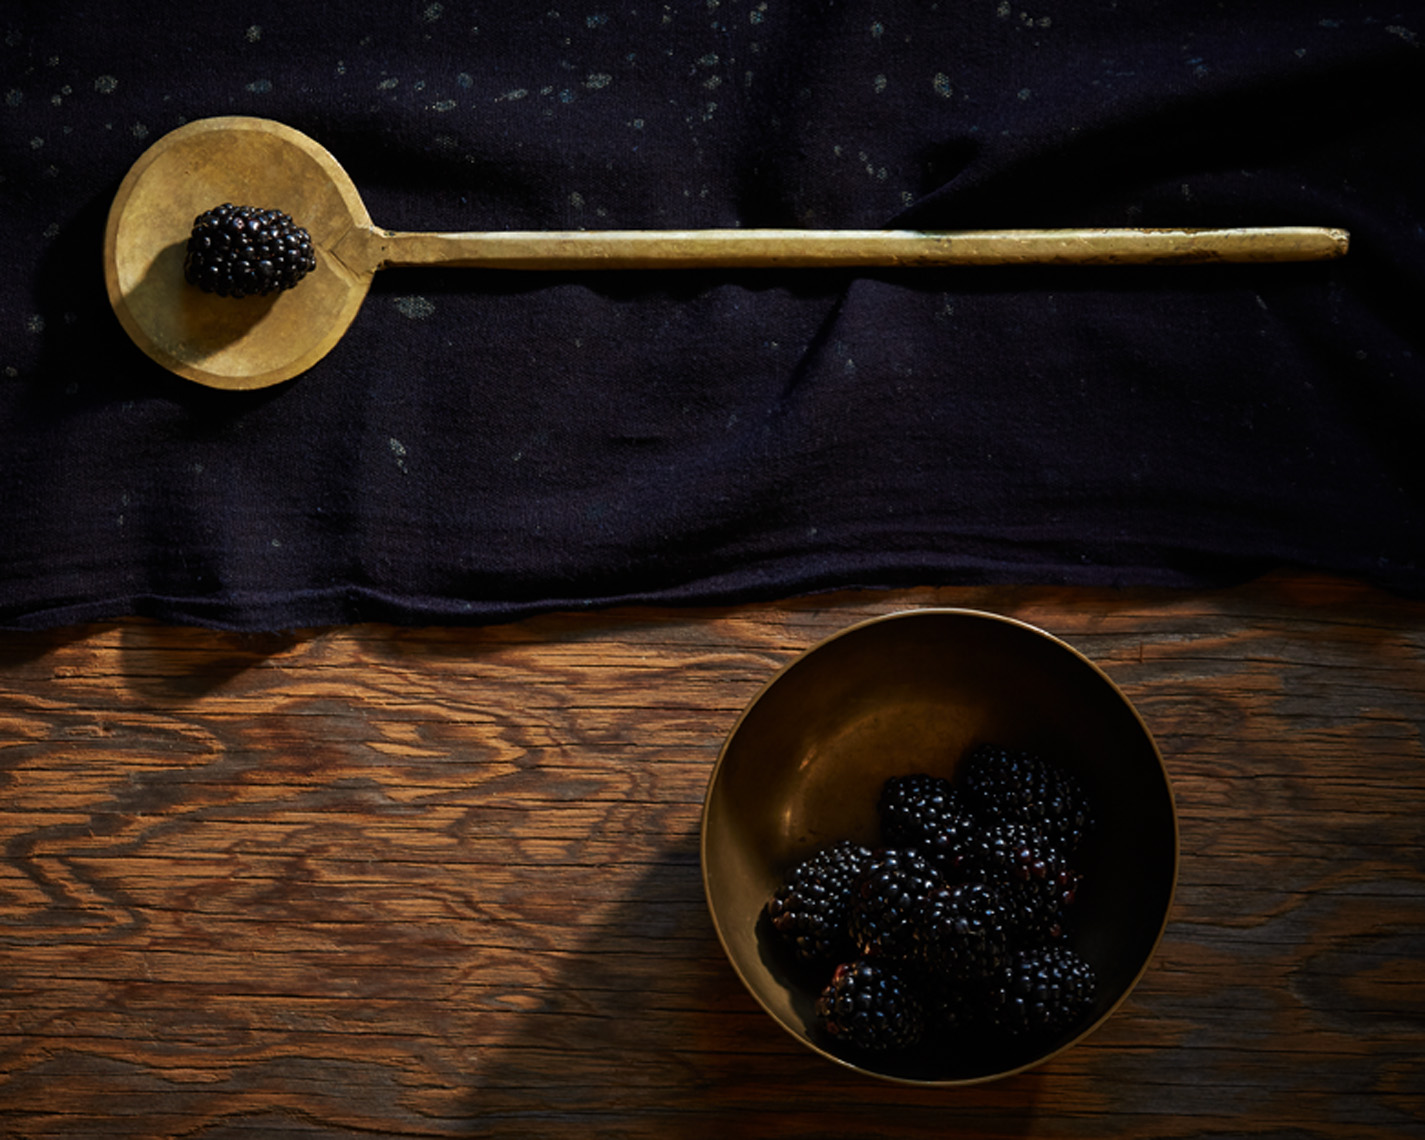 NSpoon and Blackberries